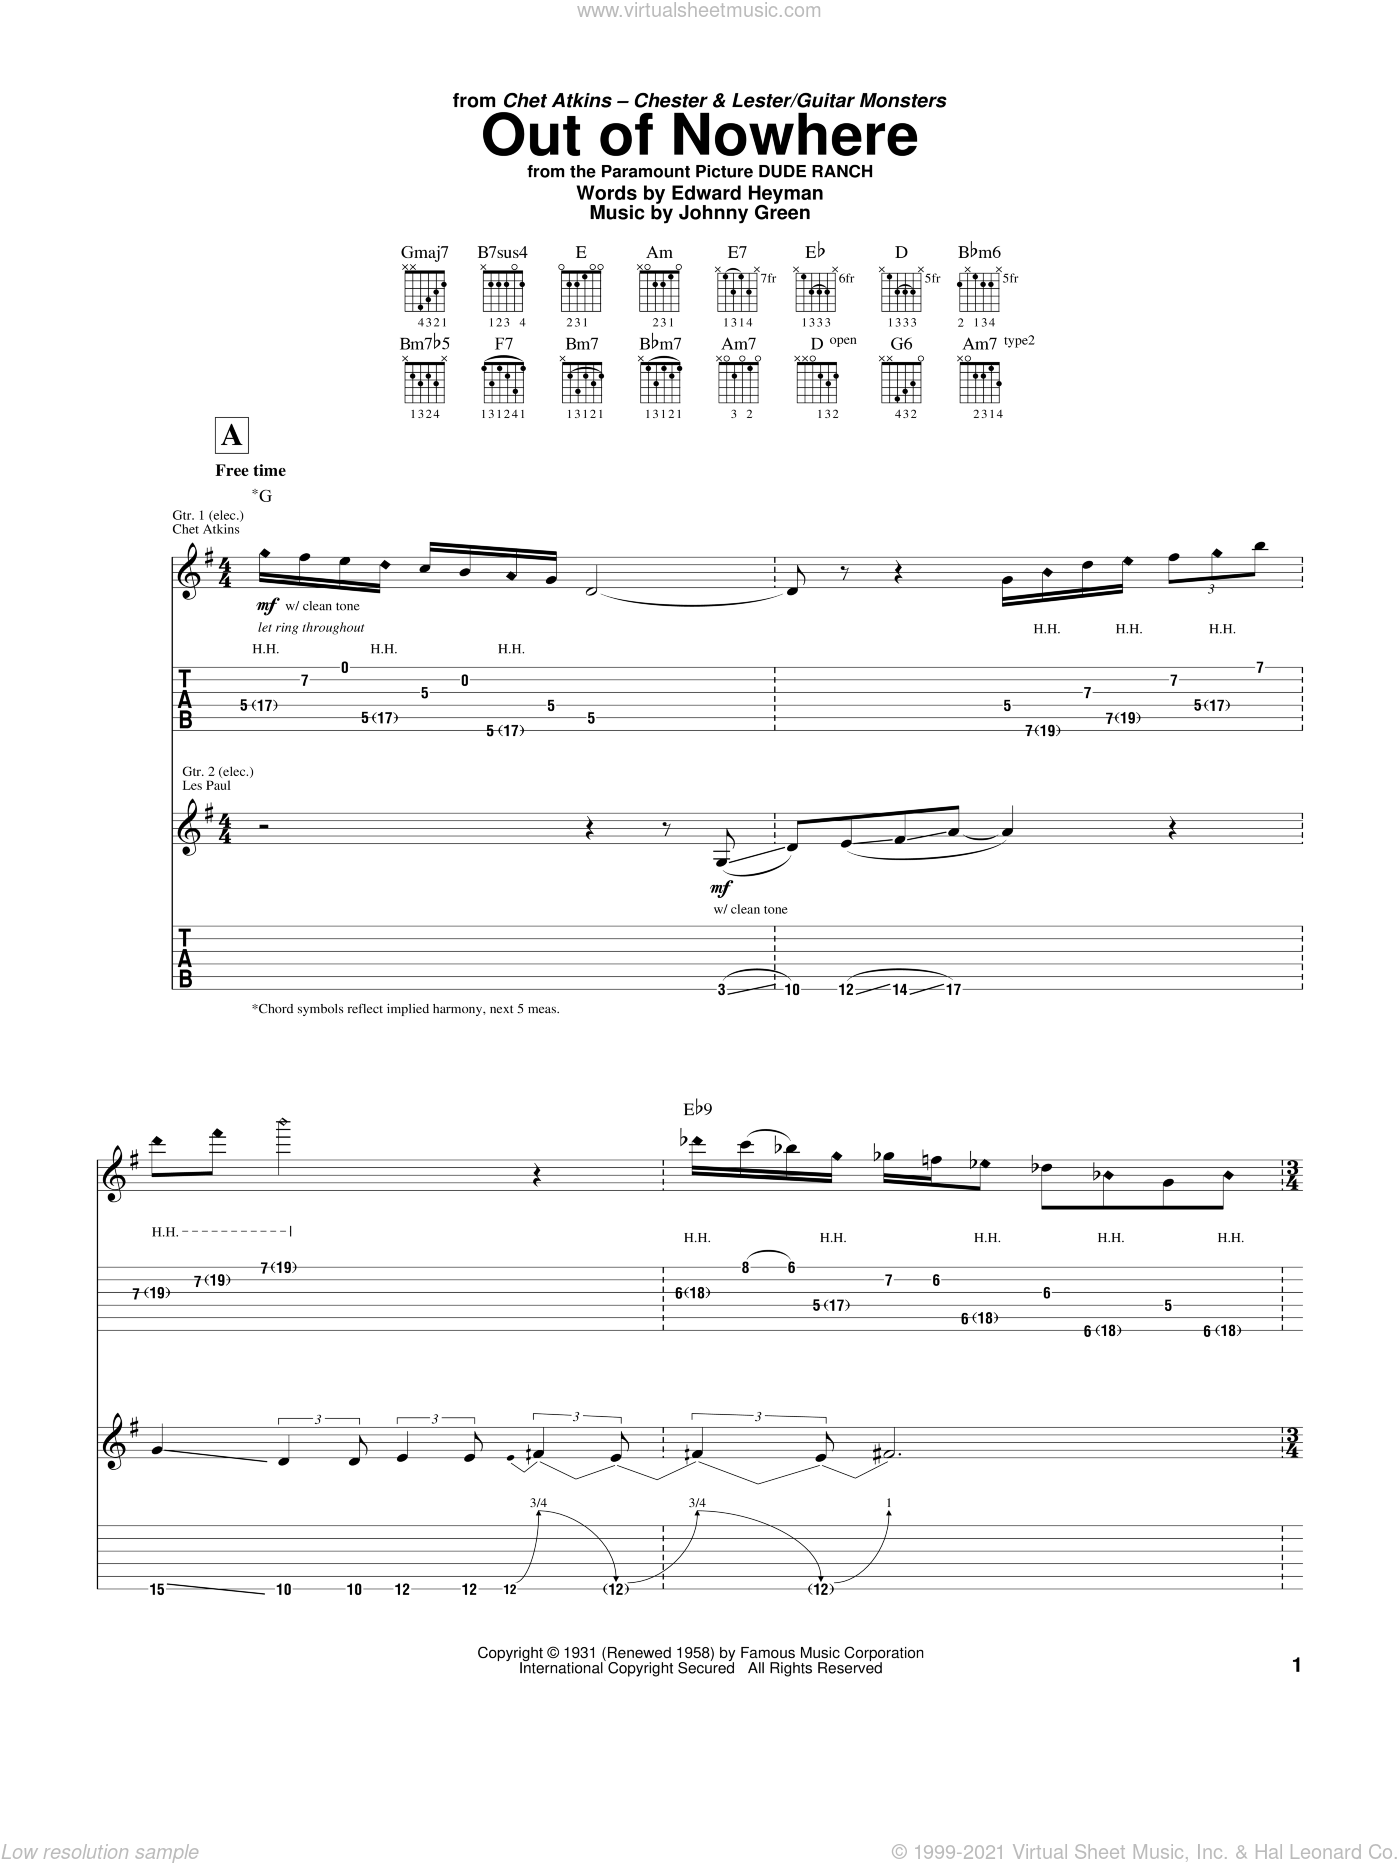 Out Of Nowhere sheet music for guitar (tablature) by Johnny Green, Chet Atkins, Django Reinhardt, Les Paul and Edward Heyman